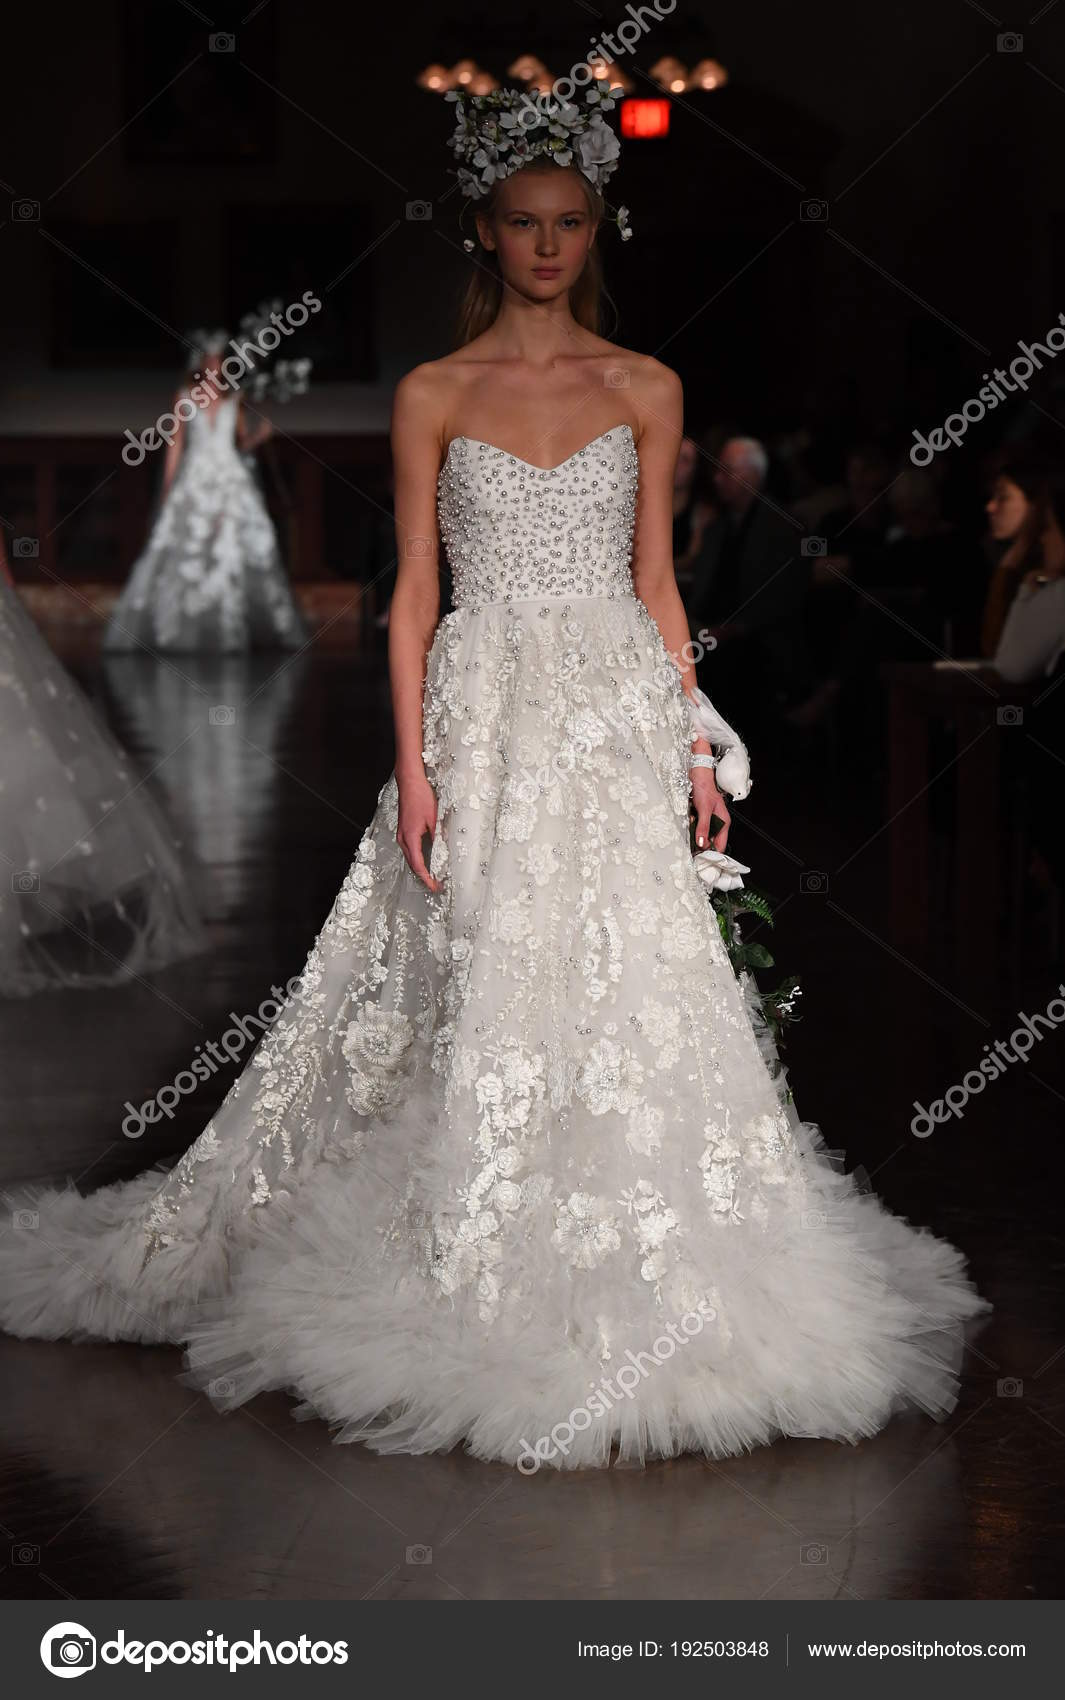 1cf70da79c32 NEW YORK, NY - APRIL 12: A model walks the runway wearing Reem Acra Spring 2019  Bridal Collection at the New York Public Library on April 12, ...